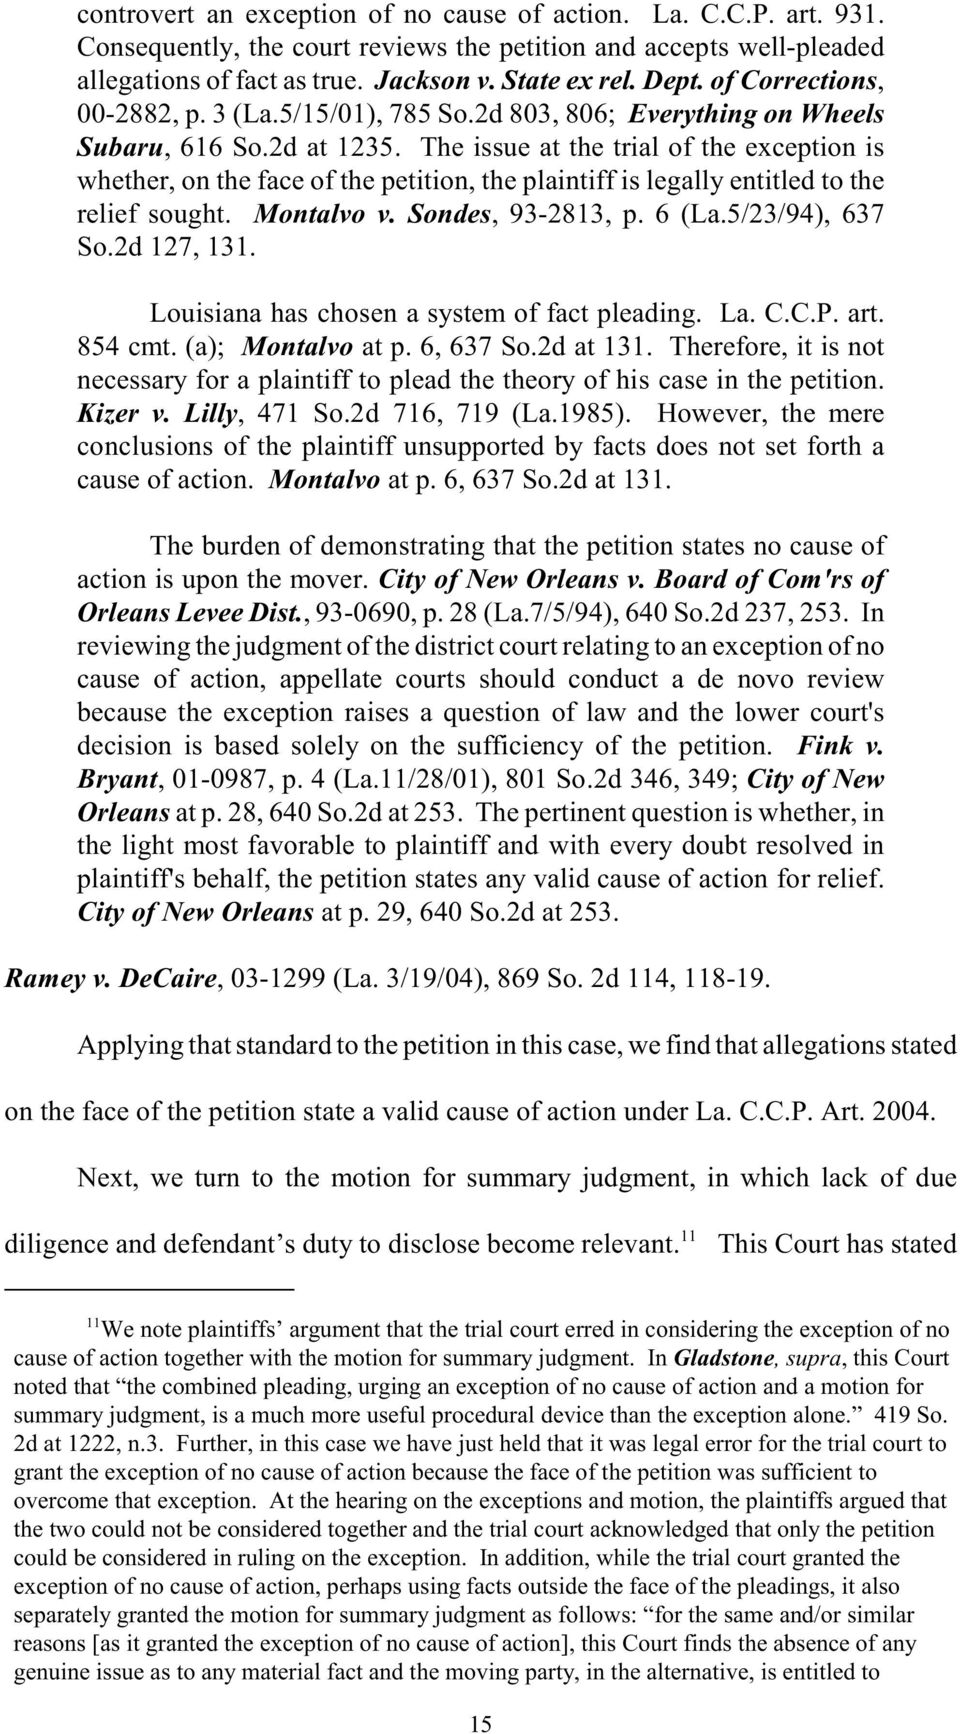 The issue at the trial of the exception is whether, on the face of the petition, the plaintiff is legally entitled to the relief sought. Montalvo v. Sondes, 93-2813, p. 6 (La.5/23/94), 637 So.